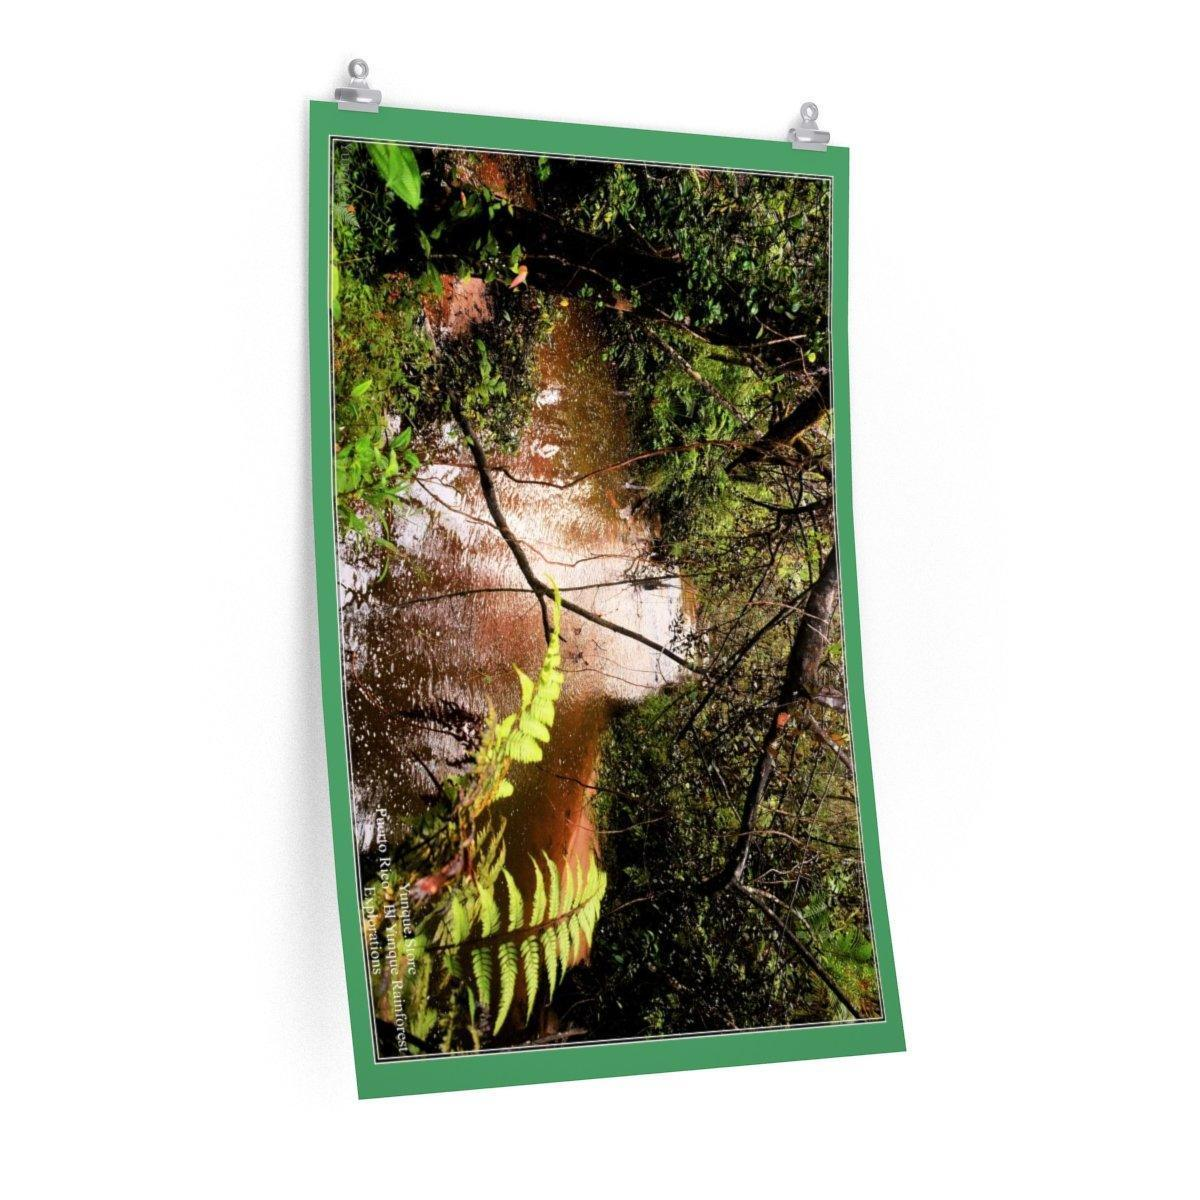 Low cost top-quality Posters - Deep forest exploration - Rio Sabana - El Yunque PR Poster Printify